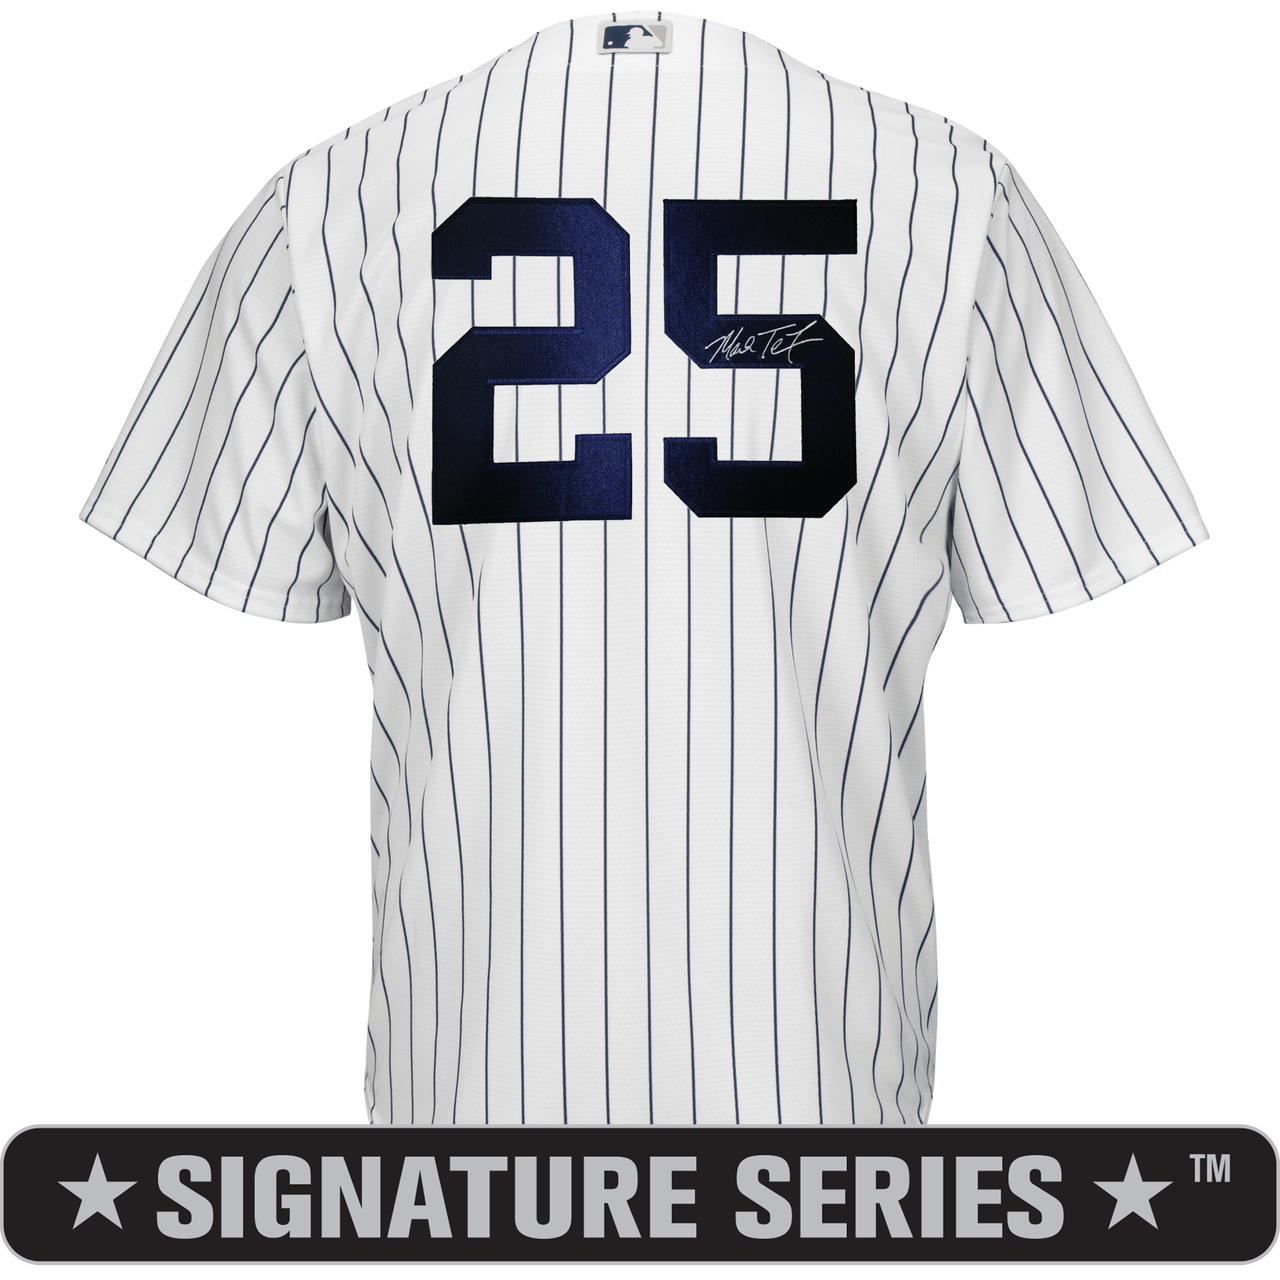 b7933b12 Mark Teixeira Signature Series No Name Jersey – NY Yankees Replica Adult  Home Jersey